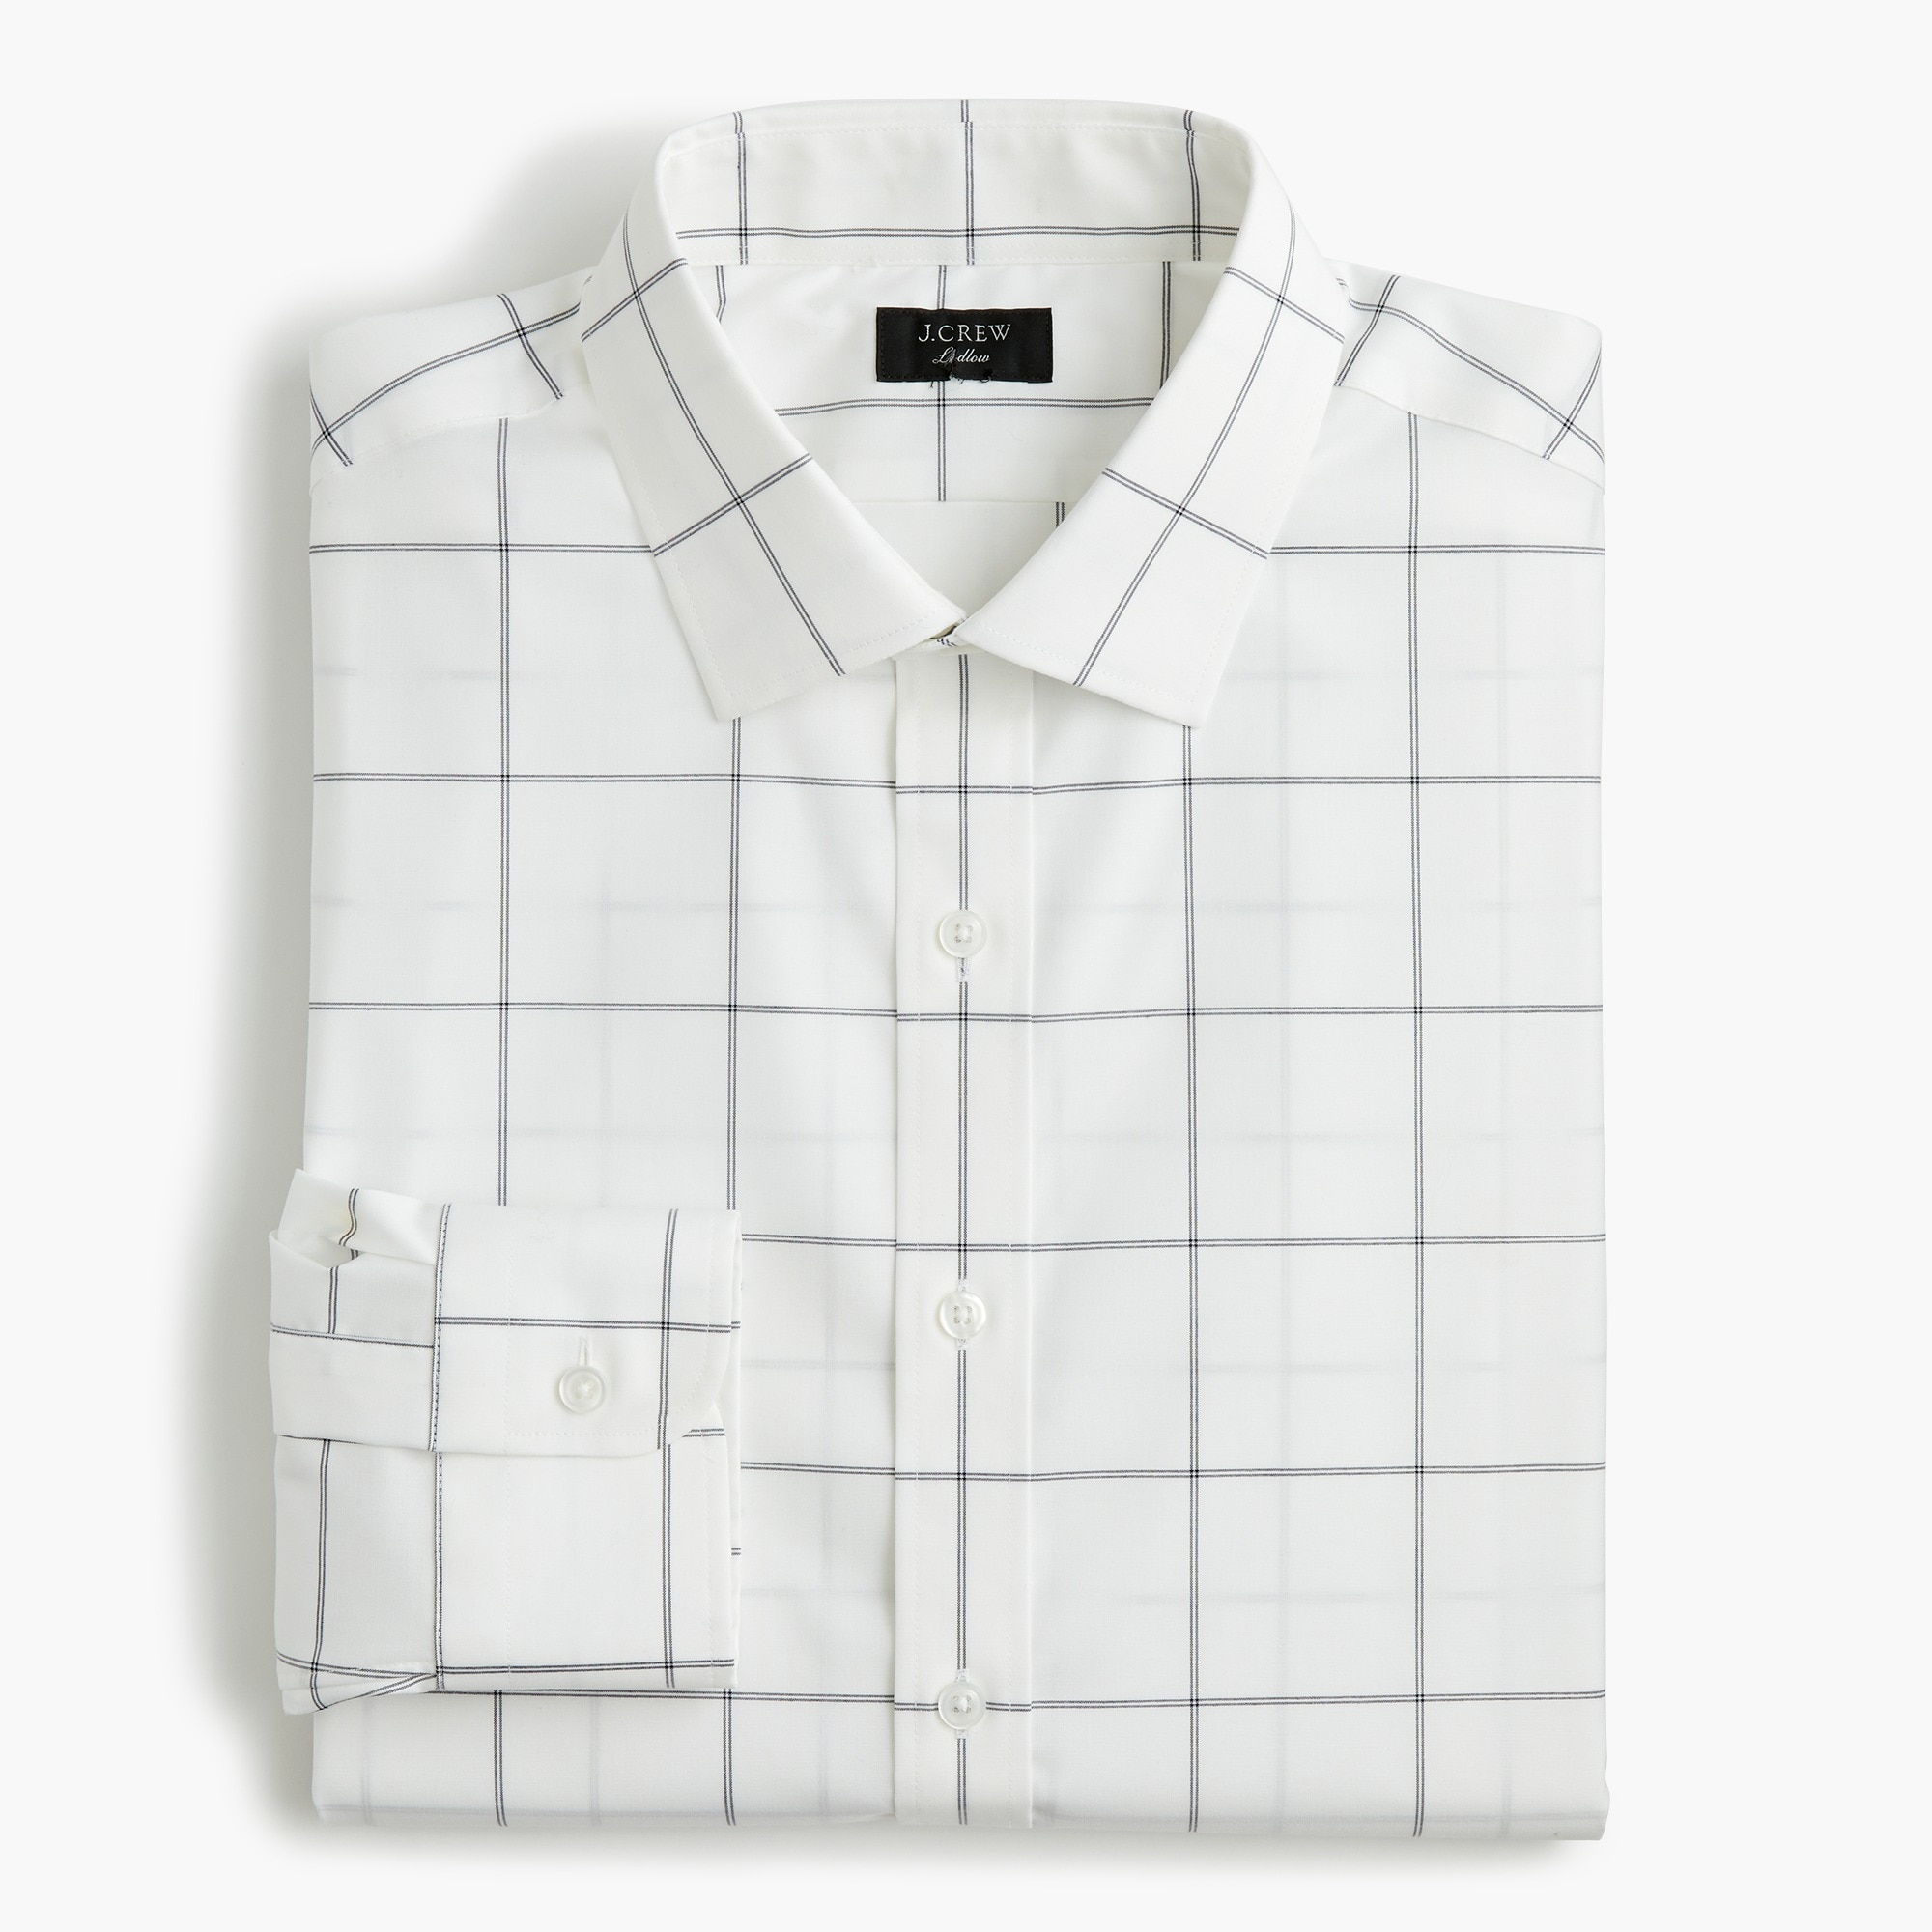 mens Ludlow Slim-fit stretch two-ply easy-care cotton dress shirt in windowpane